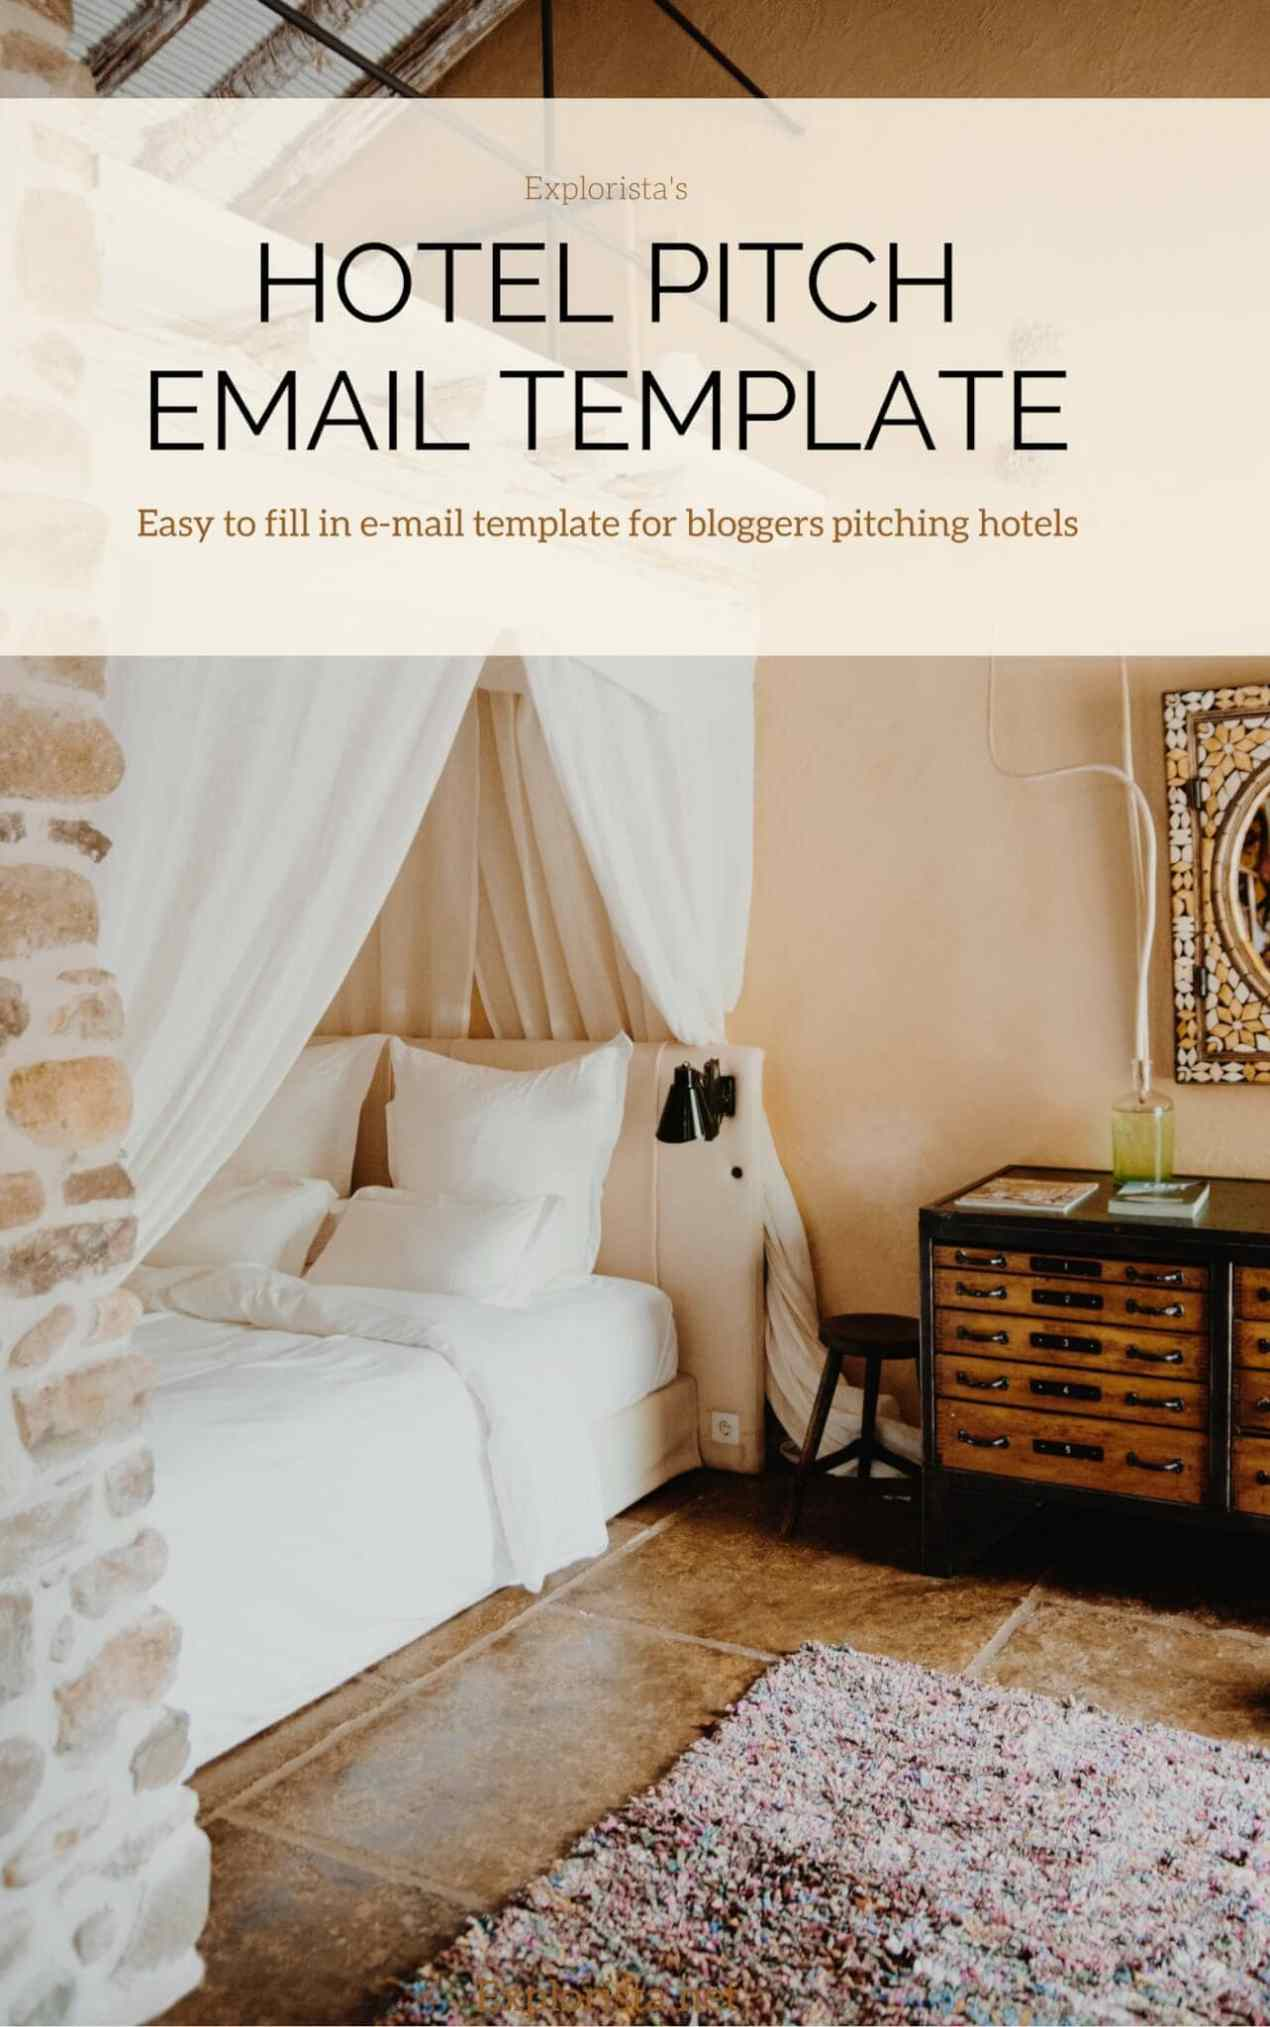 How to approach hotels for a complimentary stay as a blogger (email